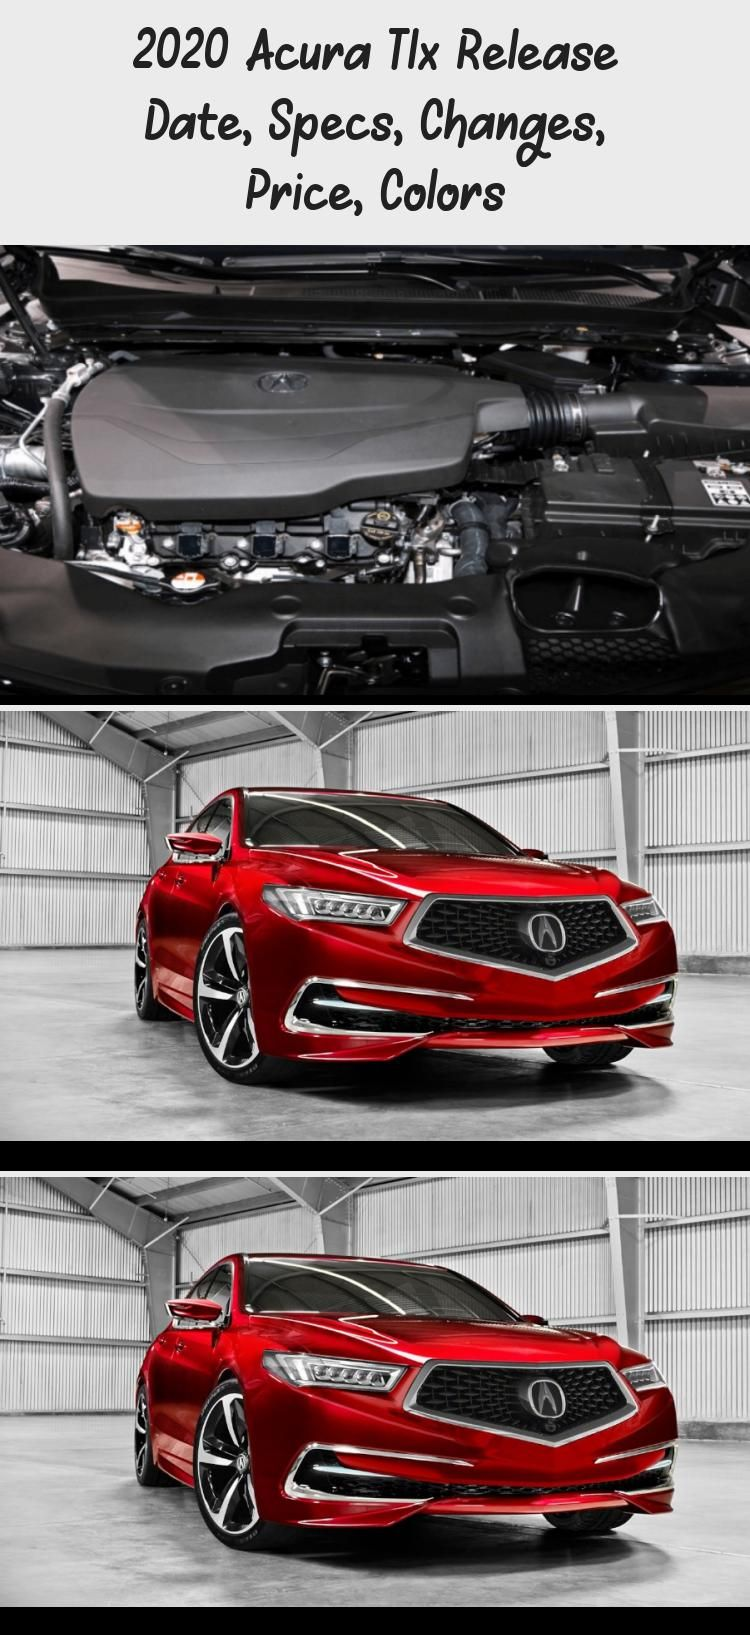 2020 Acura Tlx Release Date Specs Changes Price Colors Acuraconcept Acurawhite Acuratsx Acurasedan Acurajdm In 2020 Acura Tlx Acura Acura Sedan